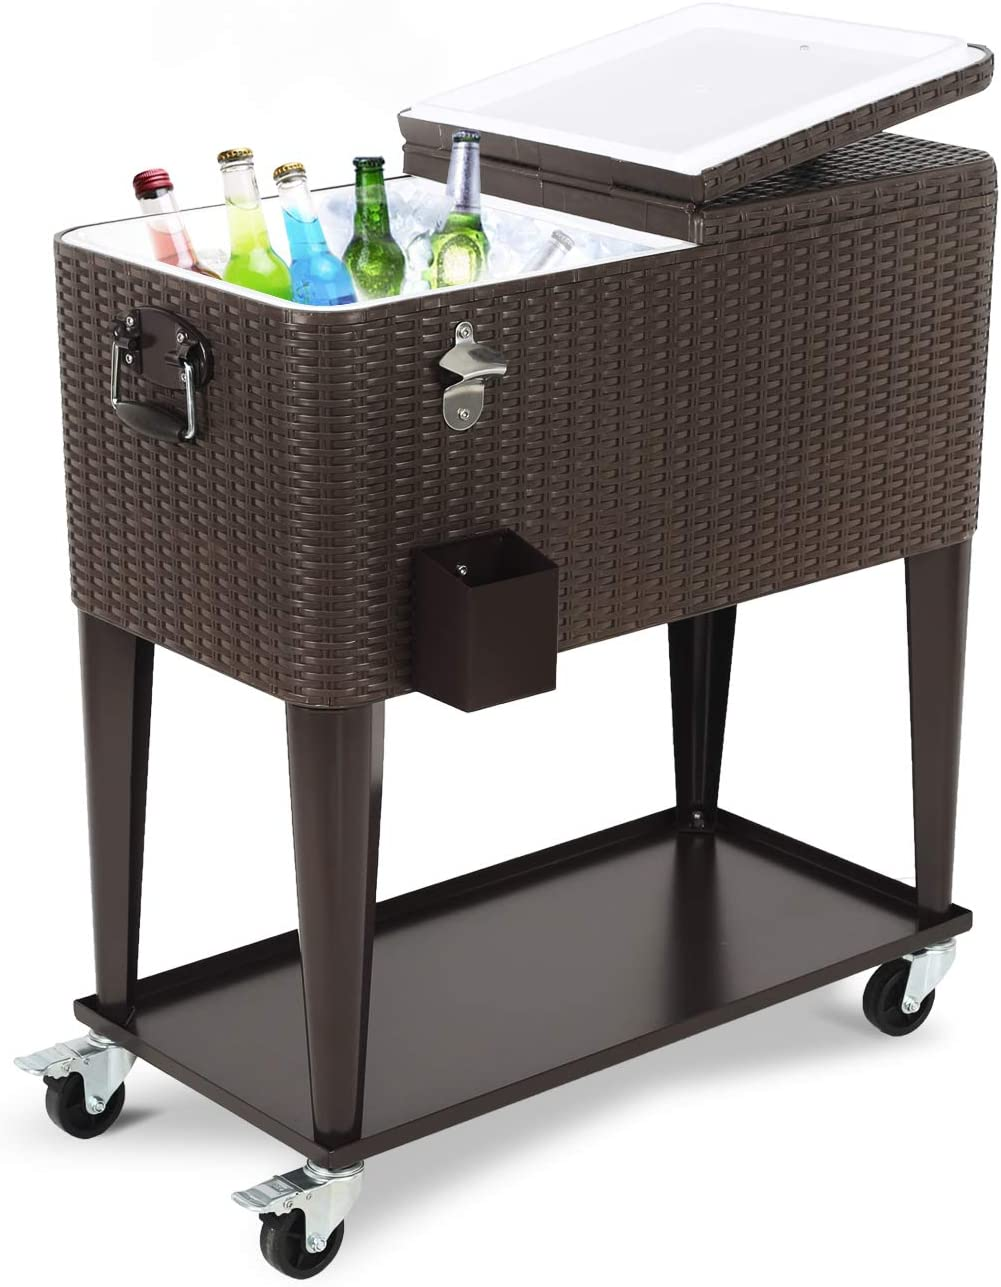 80 Quart Outdoor Patio Cooler Cart, Wicker Pattern Beverage Rolling Cooler on Wheels, Rolling Ice Chest with Shelf and Bottle Opener, Brown